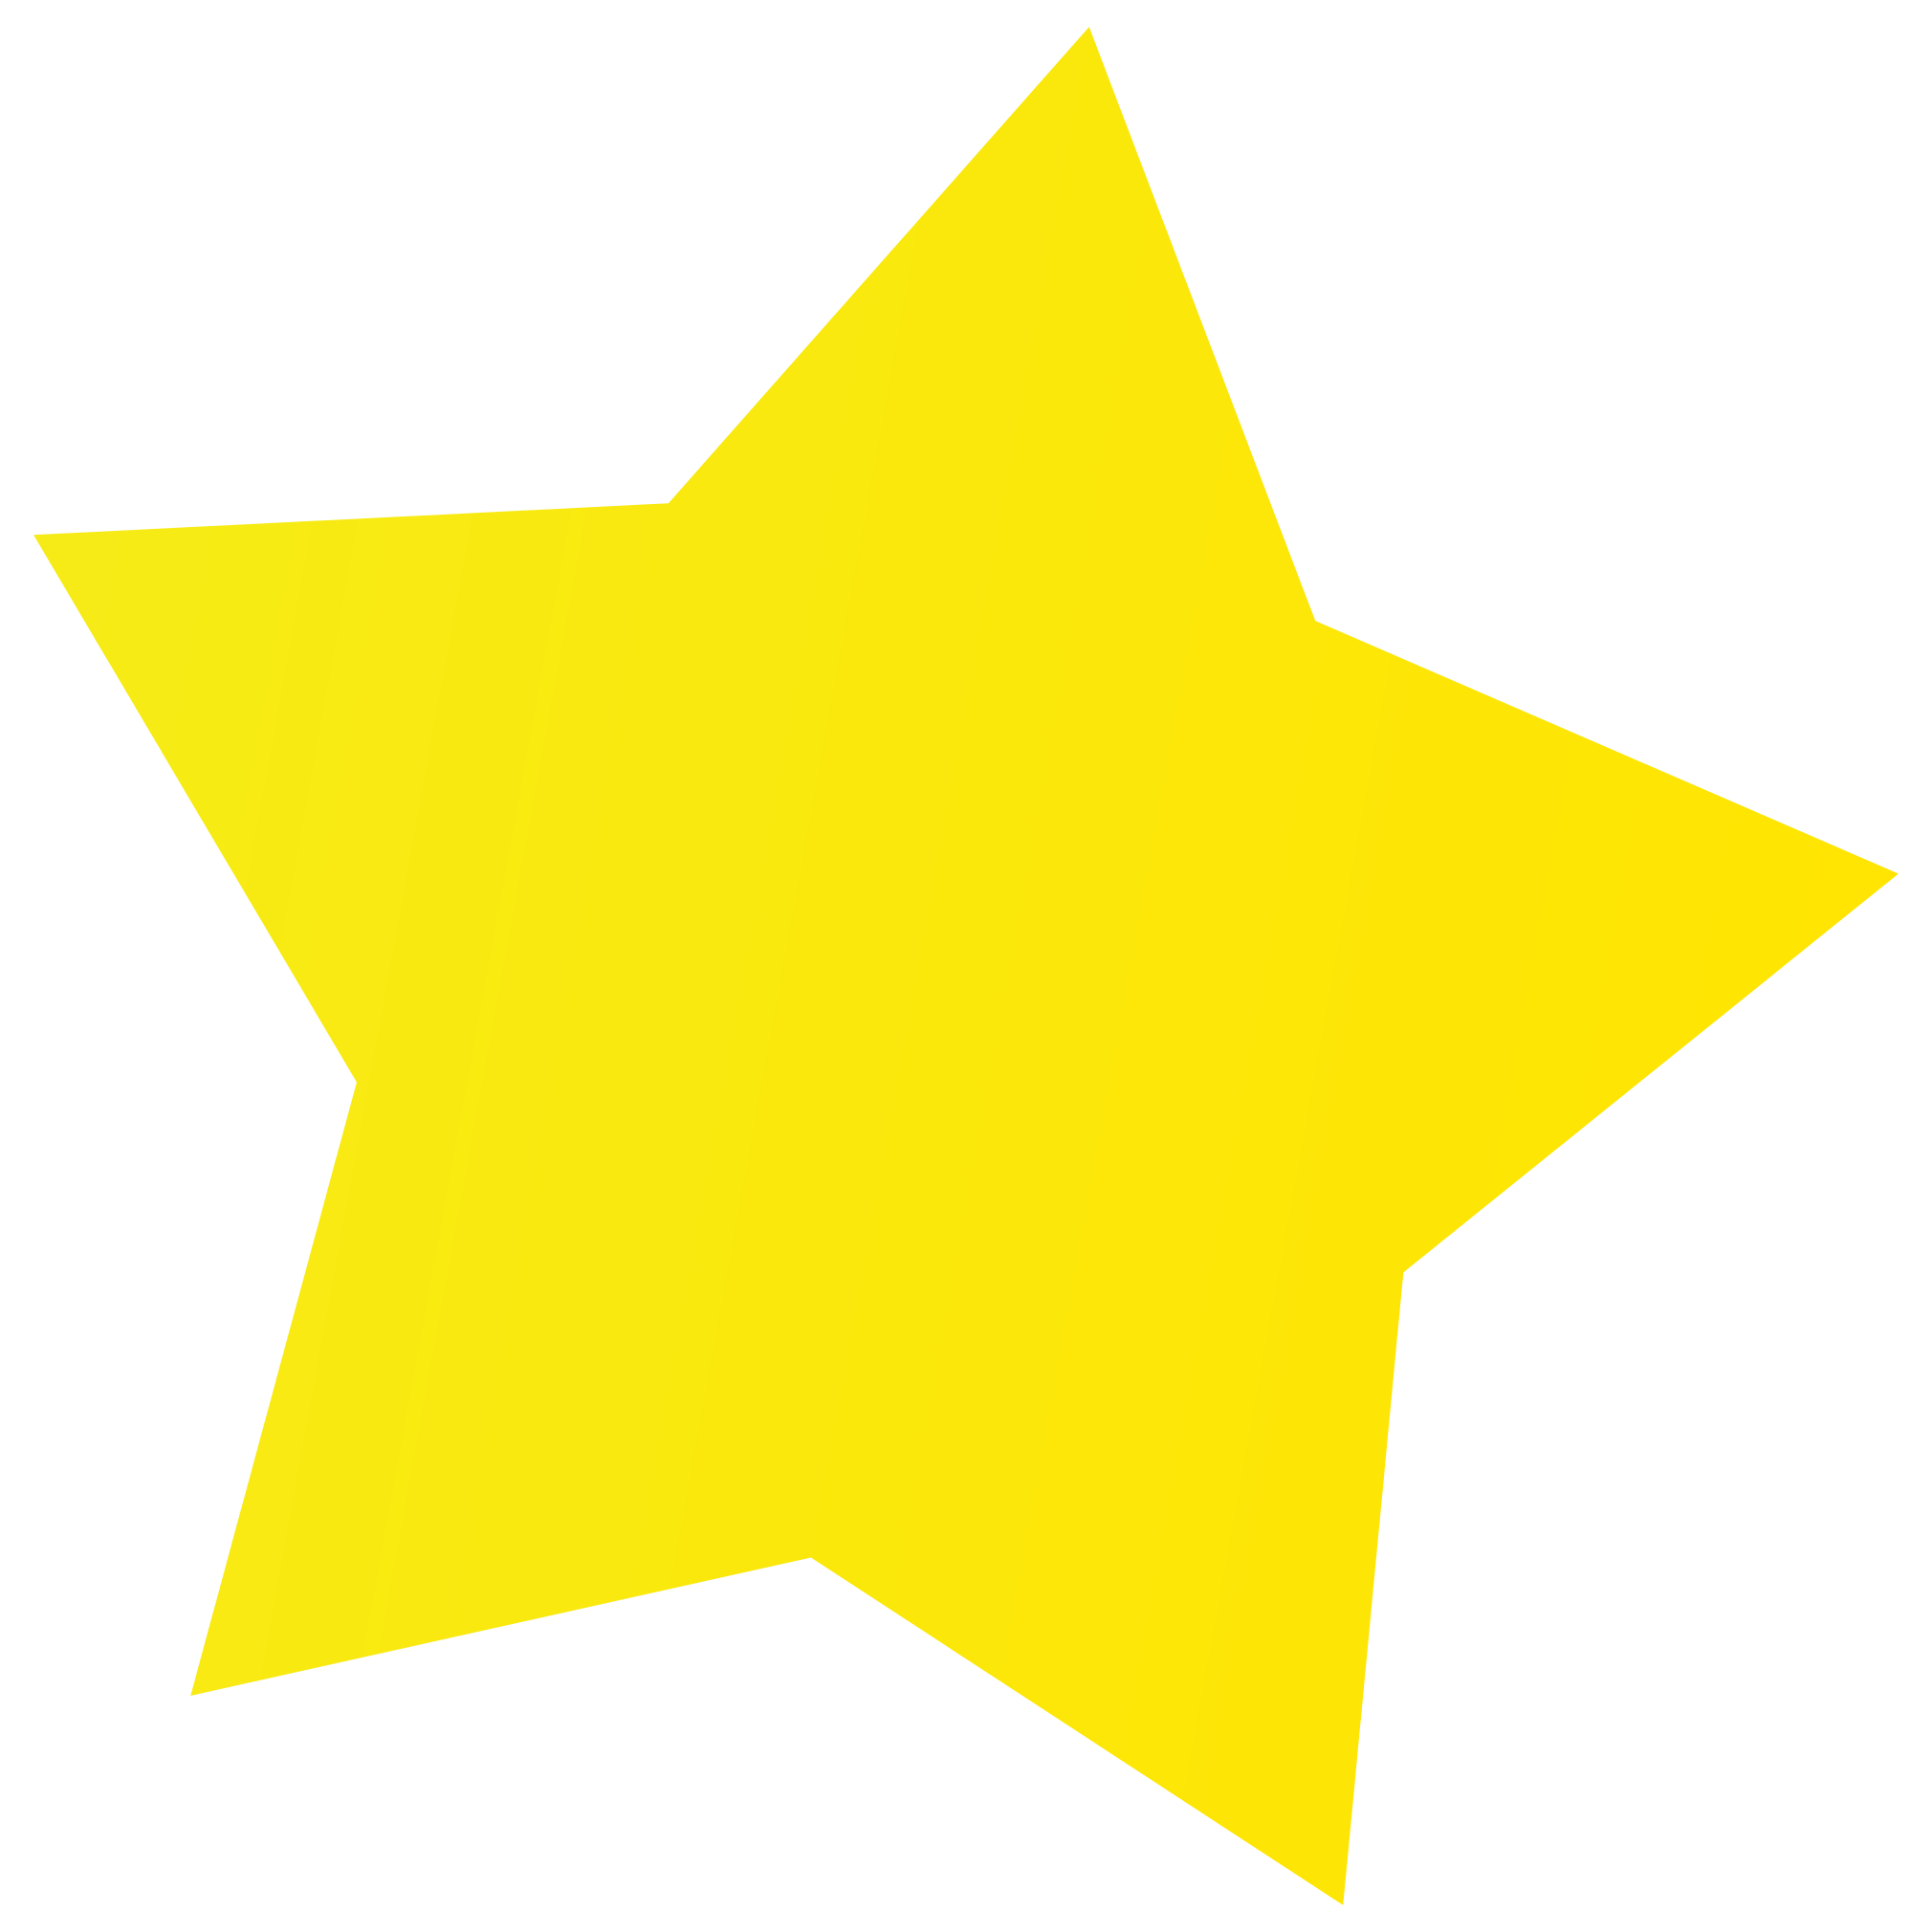 Clip Art Star Png ClipArt Best image #616 - Stars PNG